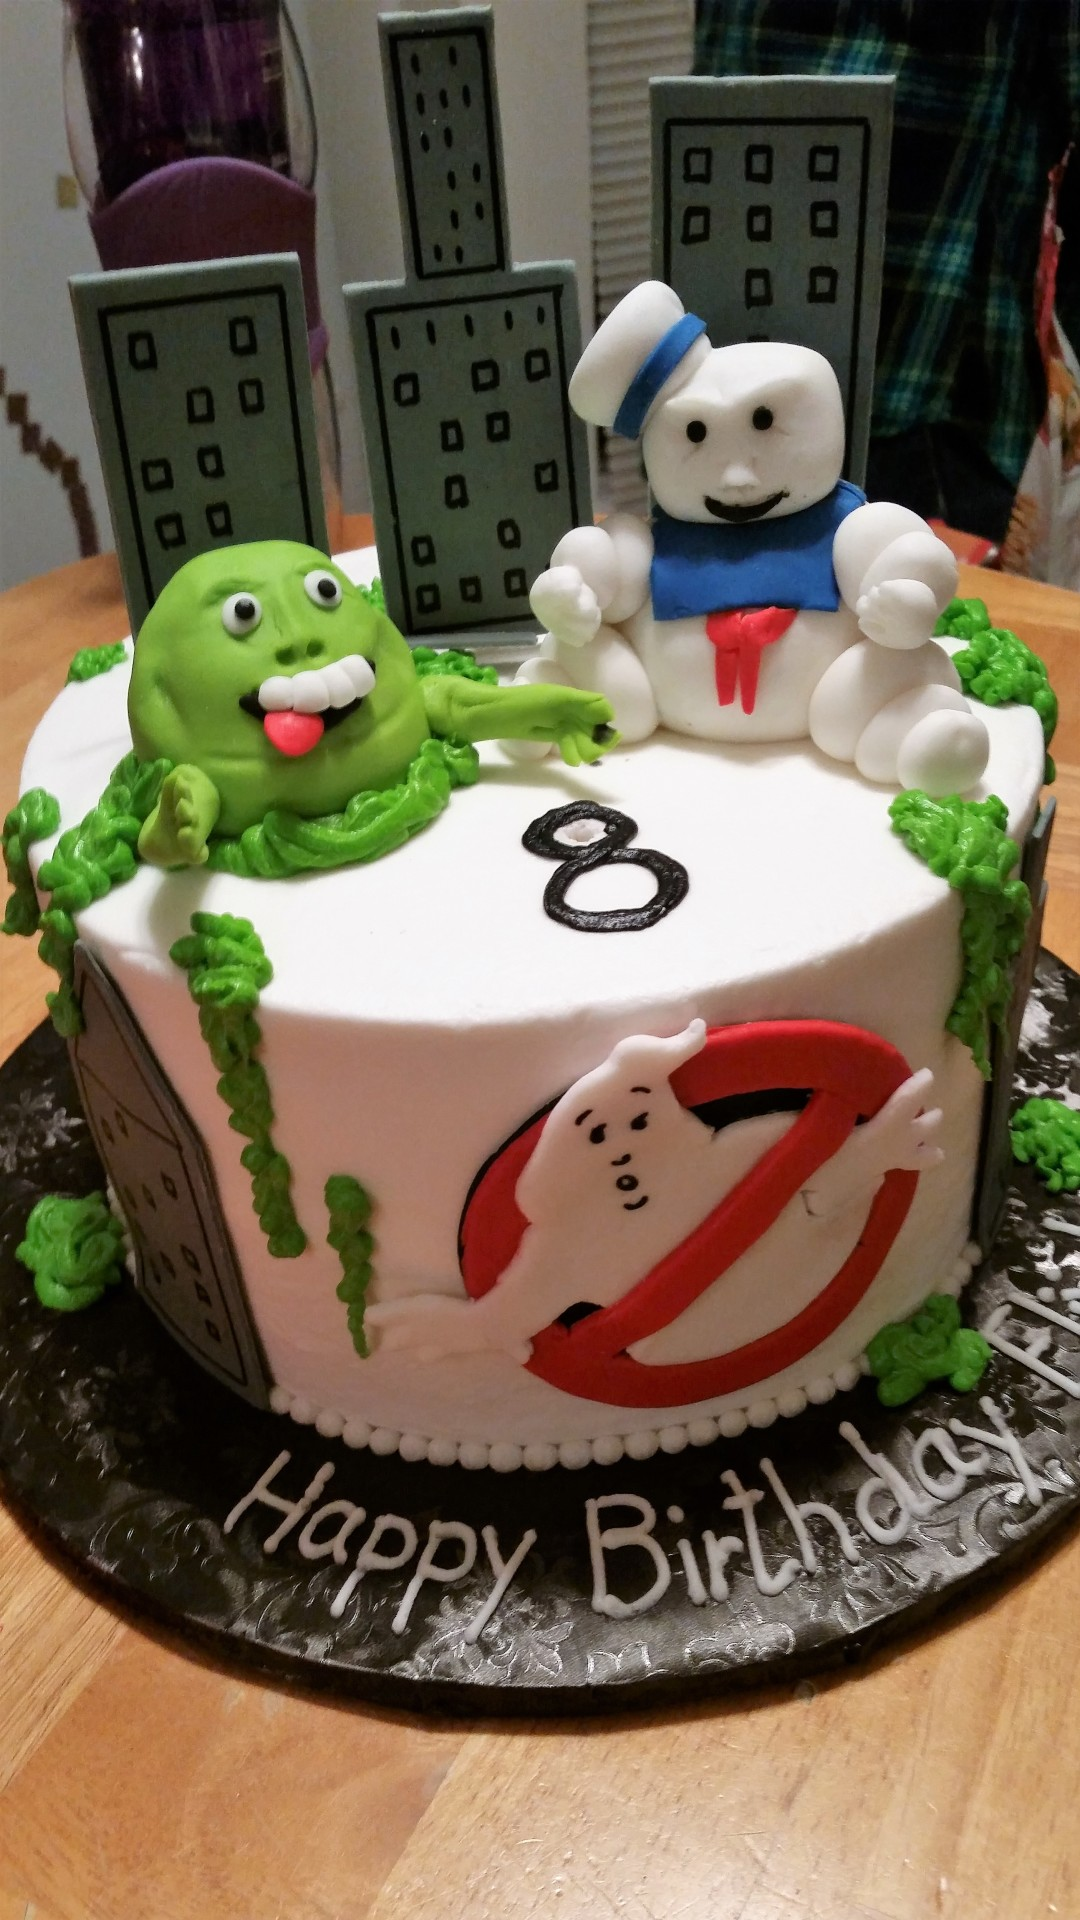 Ghostbusters with fondant figurines